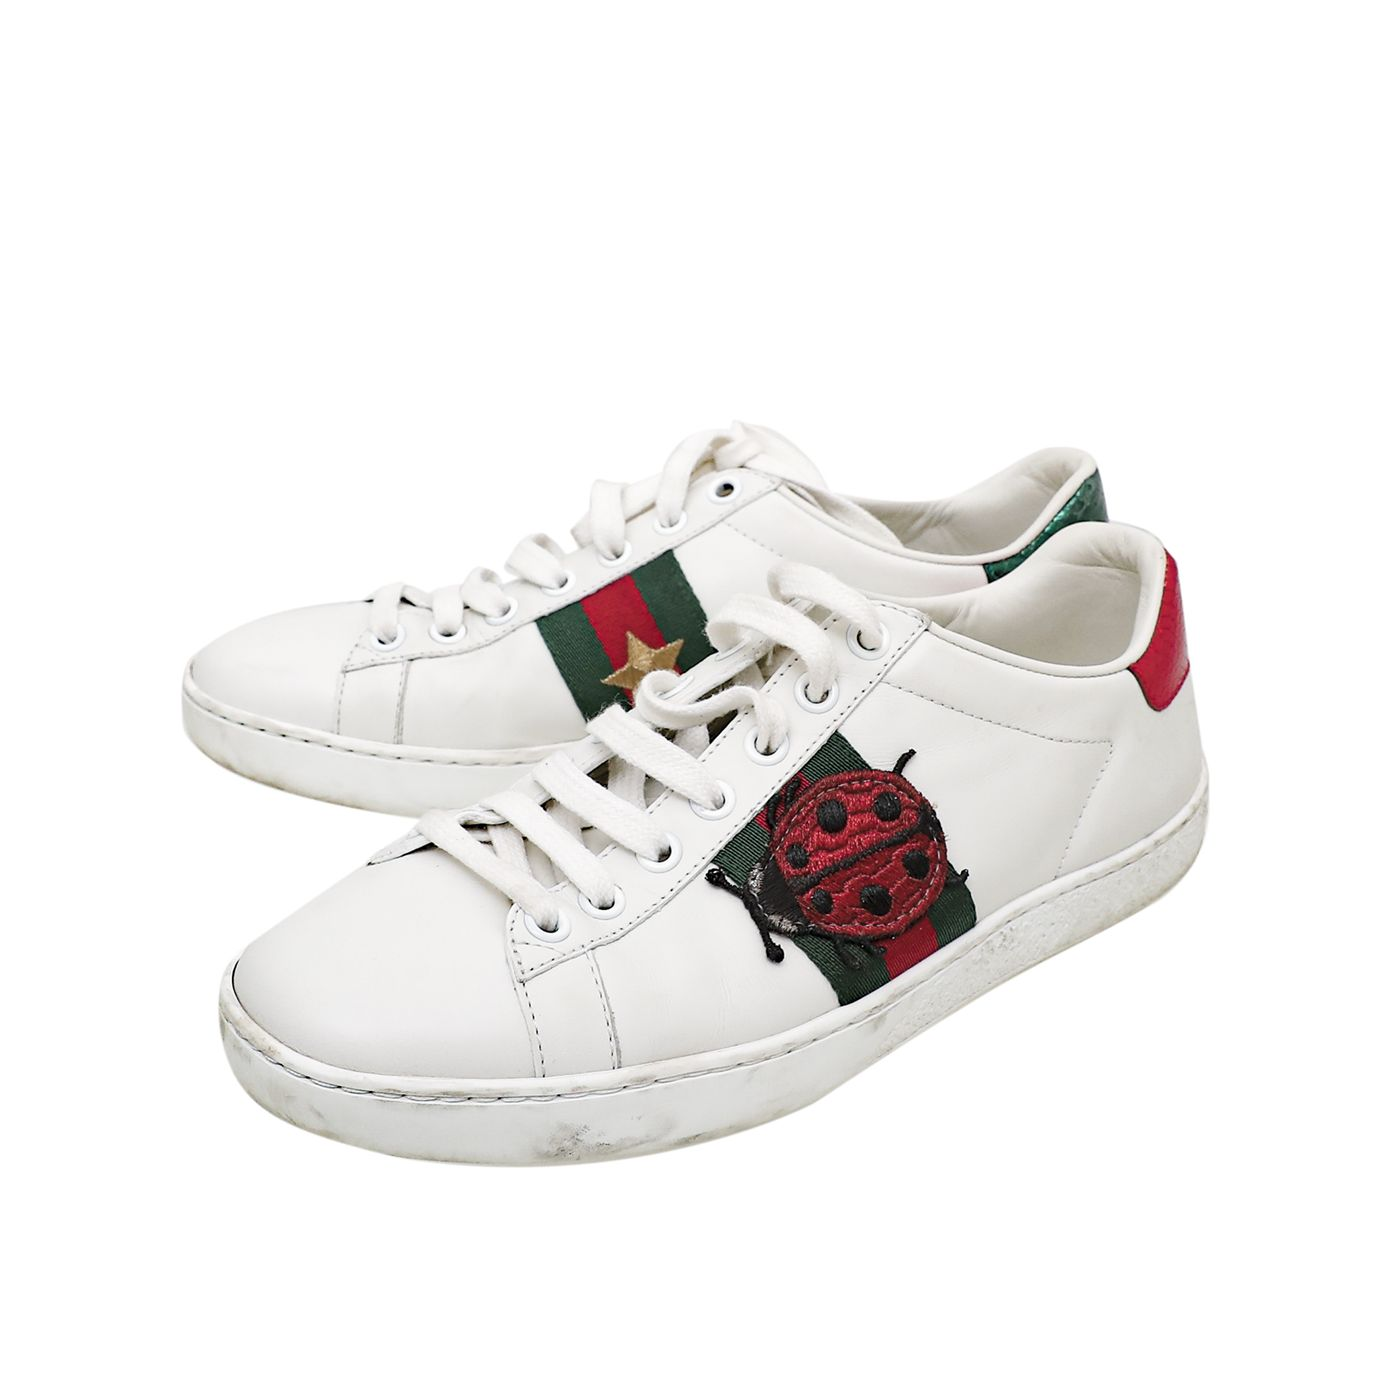 Gucci White Ace Ladybug and Pineapple Sneaker 35.5